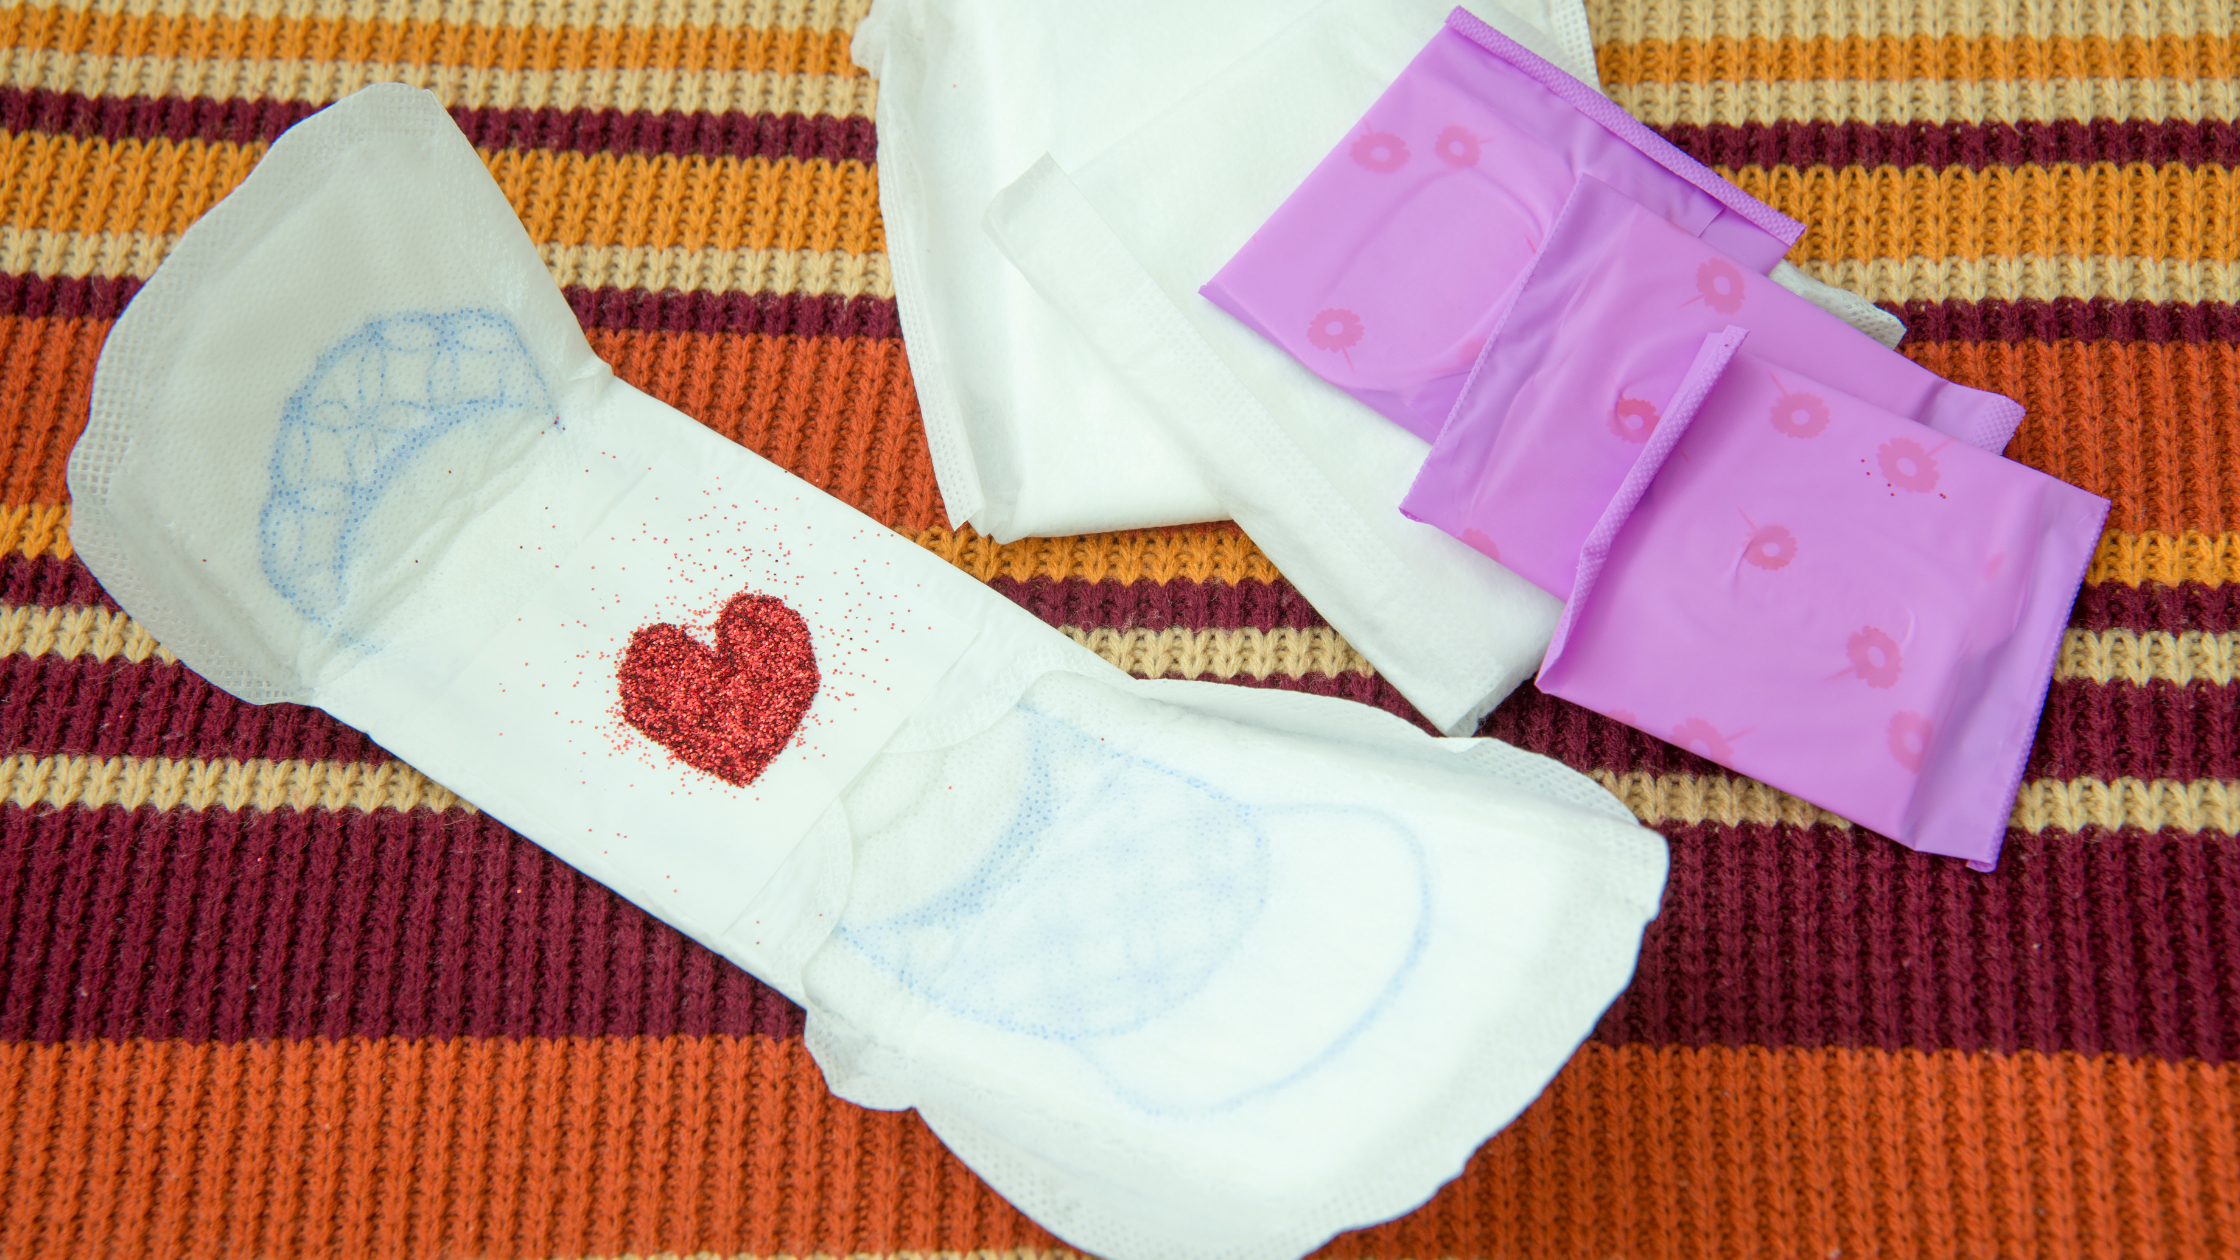 Etiquettes of Sanitary Napkins